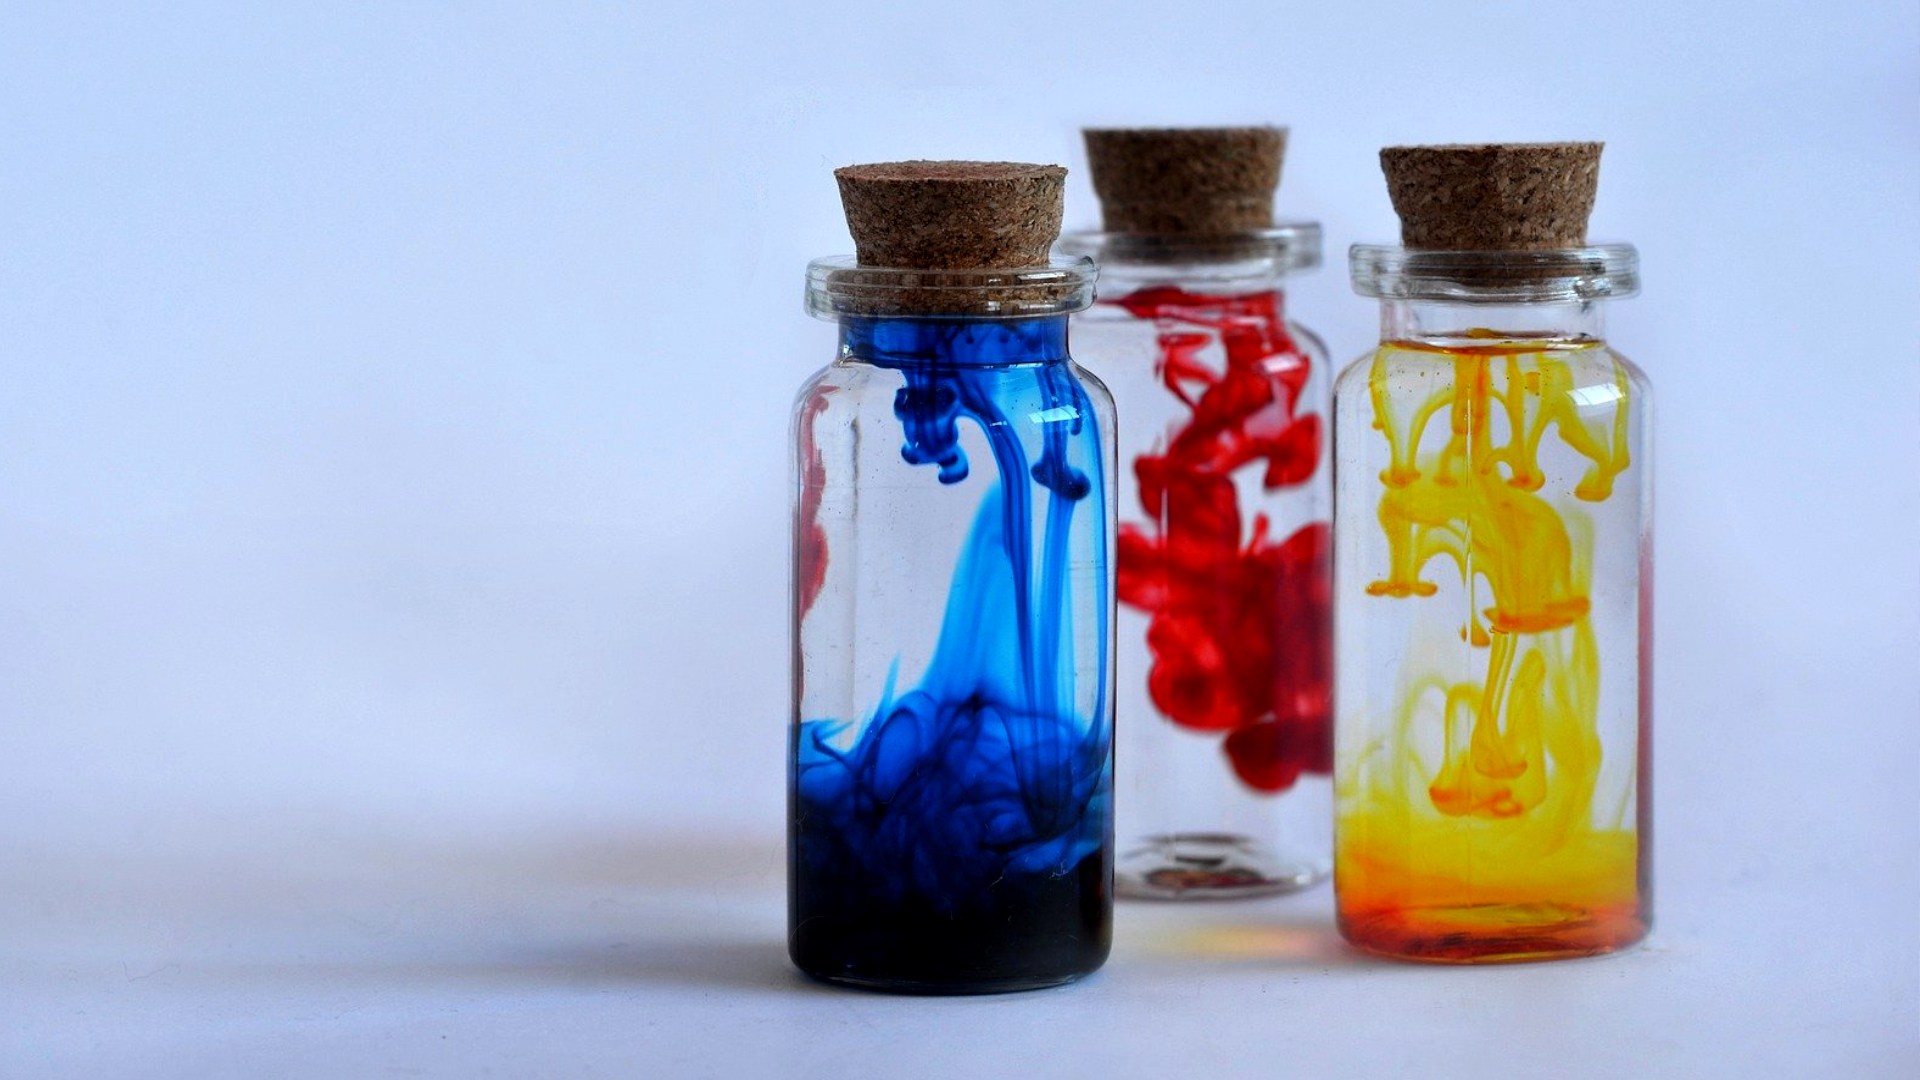 Specialty Chemicals Prices and its Impact on Global Trade due to Covid-19